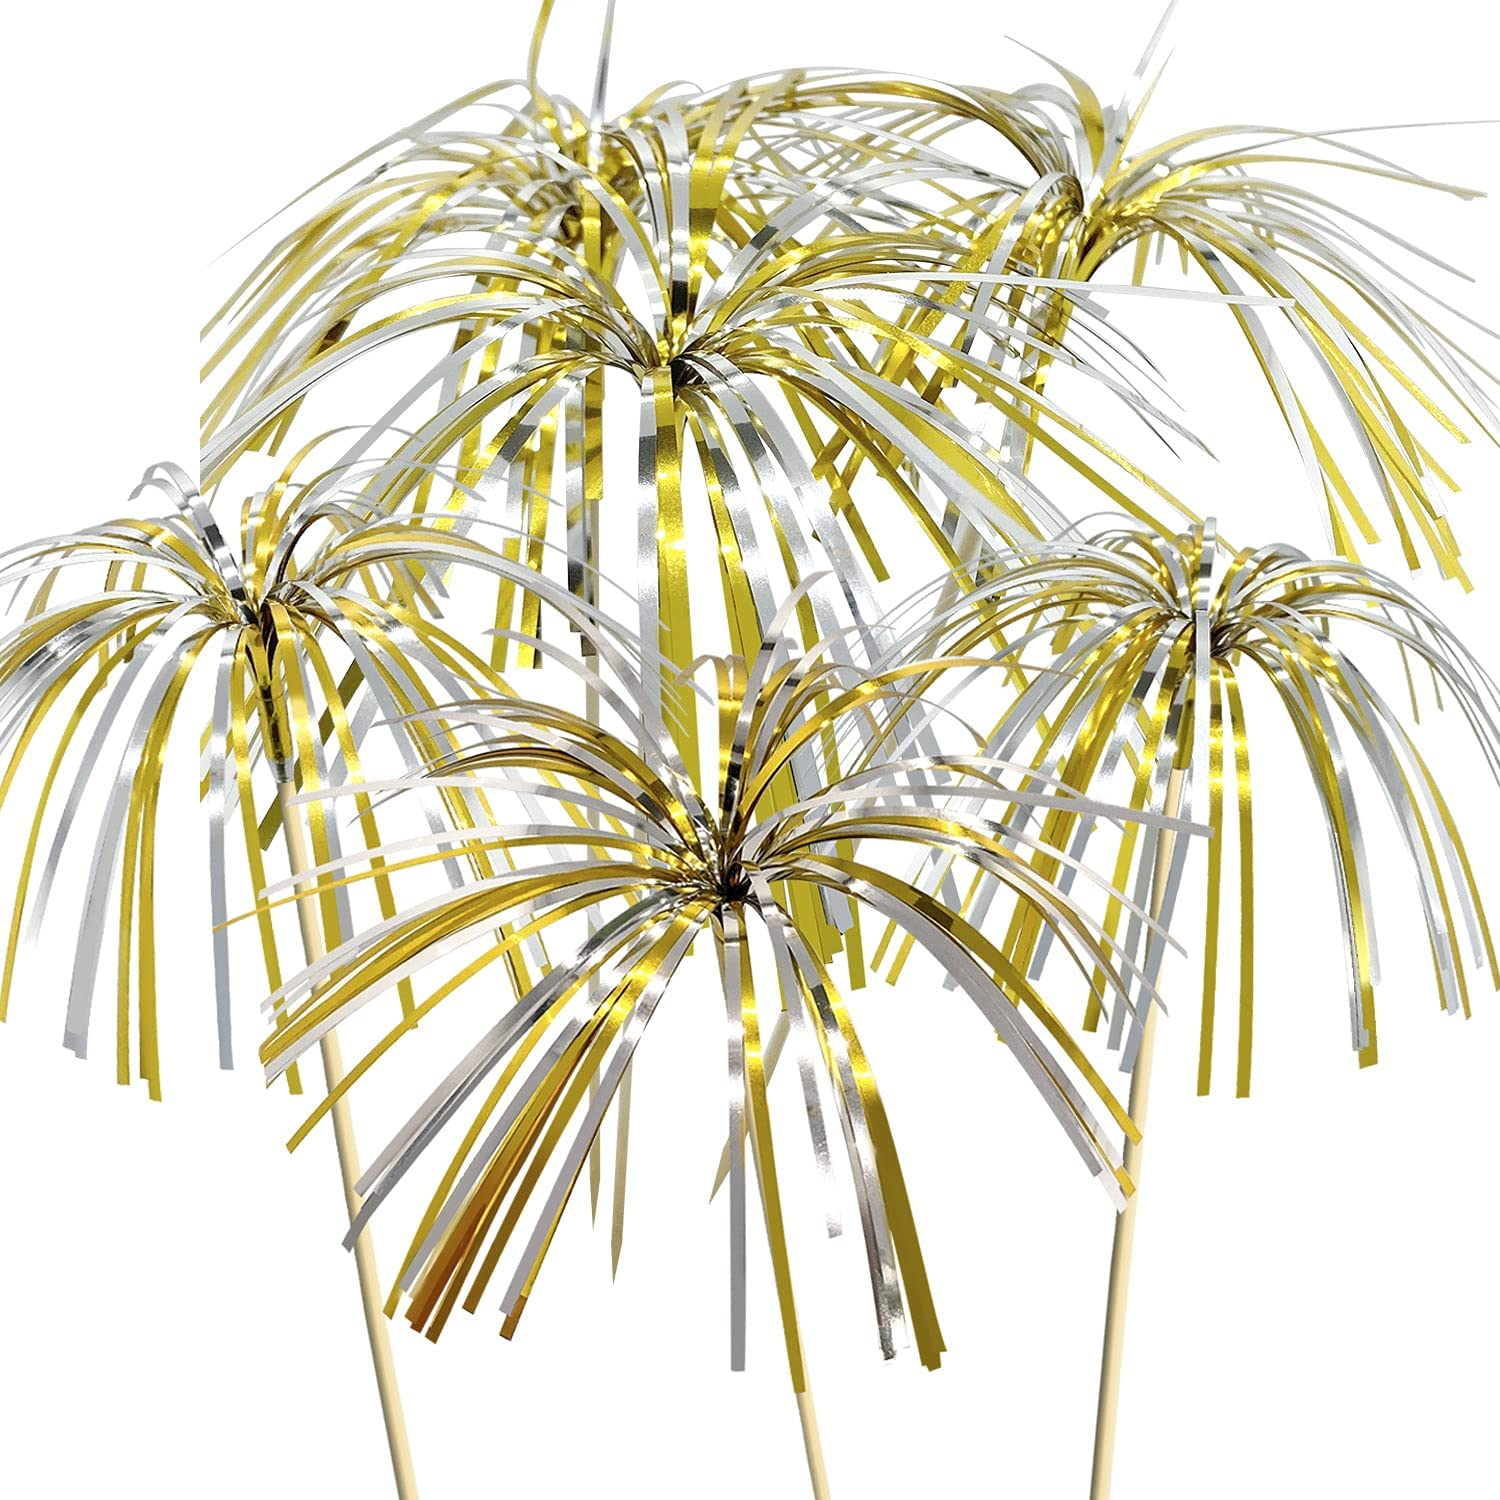 JIUMN Firework Cocktail Picks 100 Counts 4.7 Inch Gold and Silver Firework Picks Bamboo Toothpicks Cocktail Sticks Food Picks Supplies Party Decoration